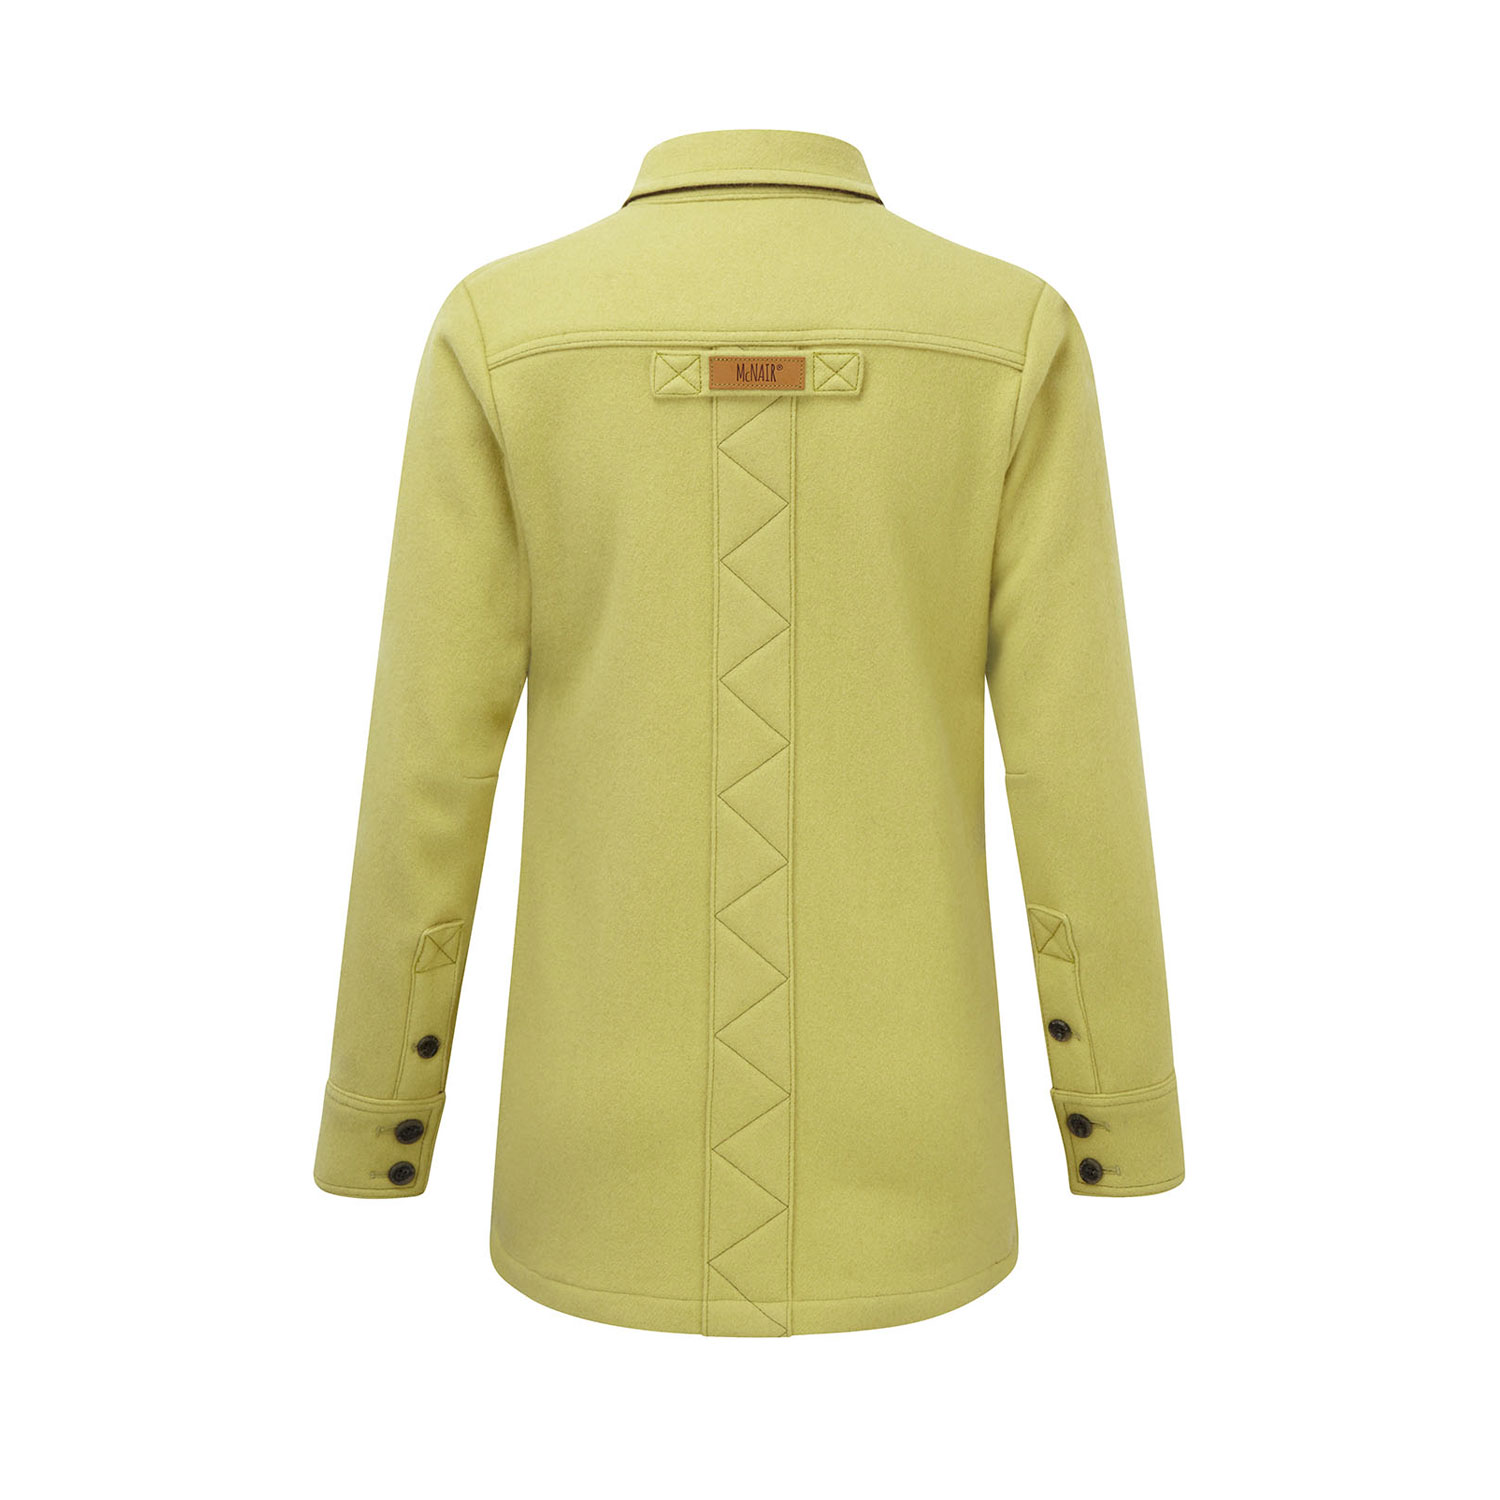 McNair heavy weight merino shirt in English Mustard